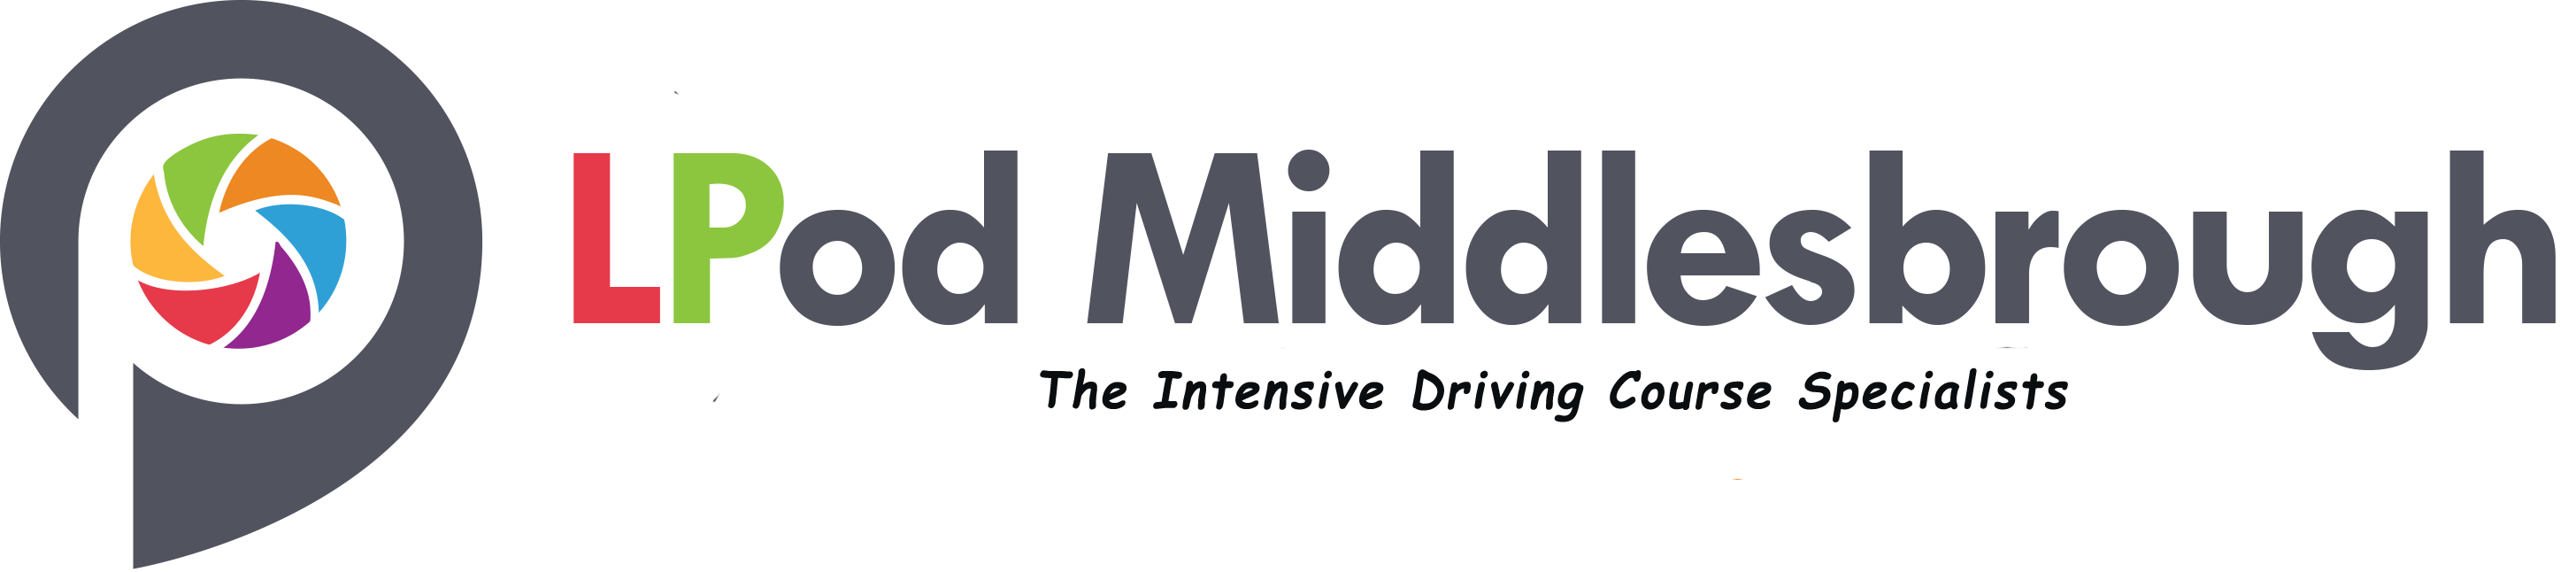 intensive driving courses Middlesbrough